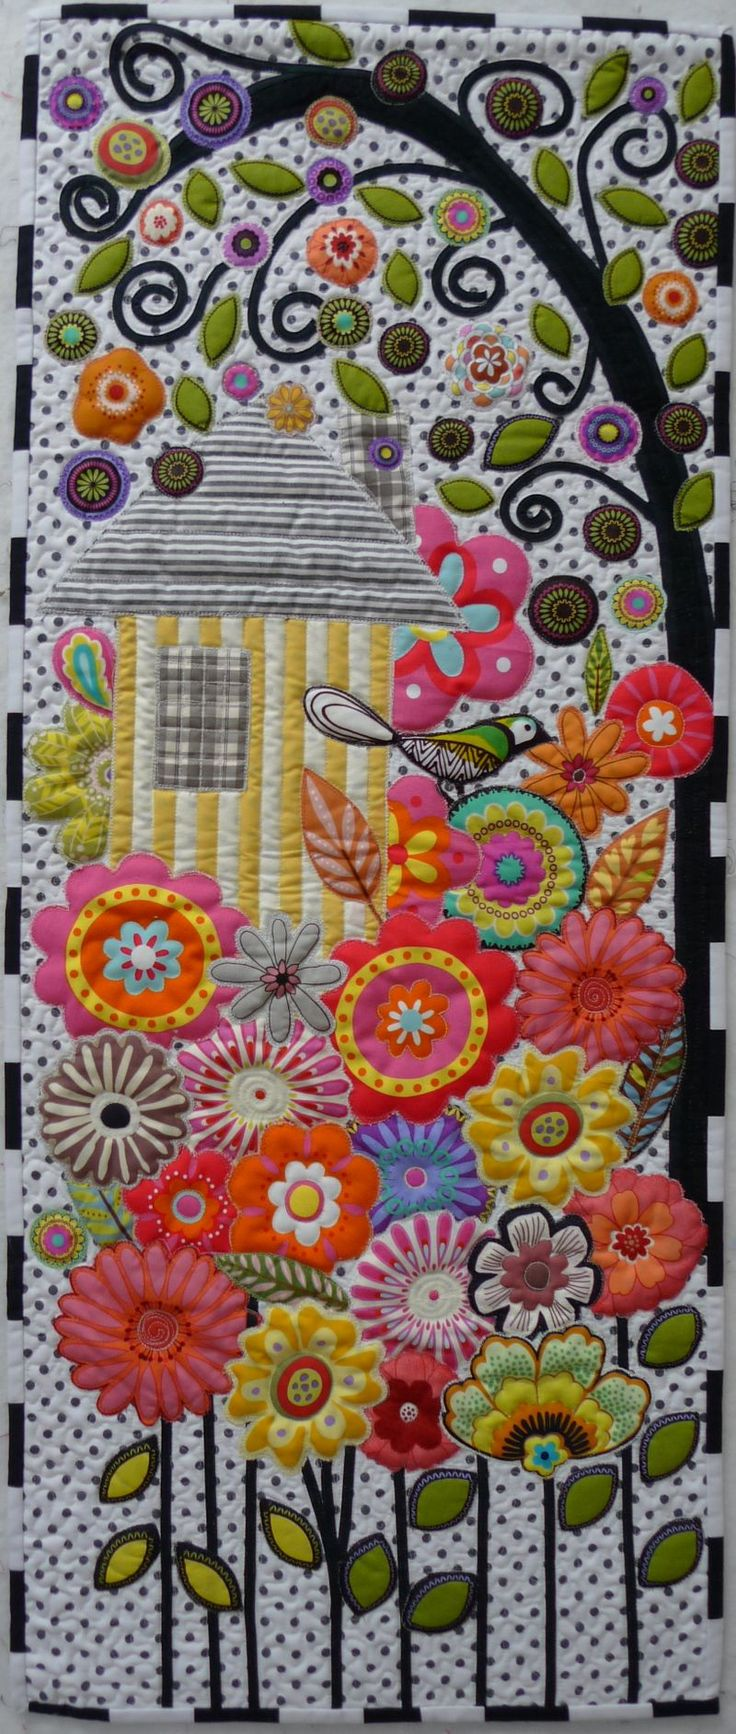 applique birdhouse quilt - so pretty. Looks like it would be fun to make :)